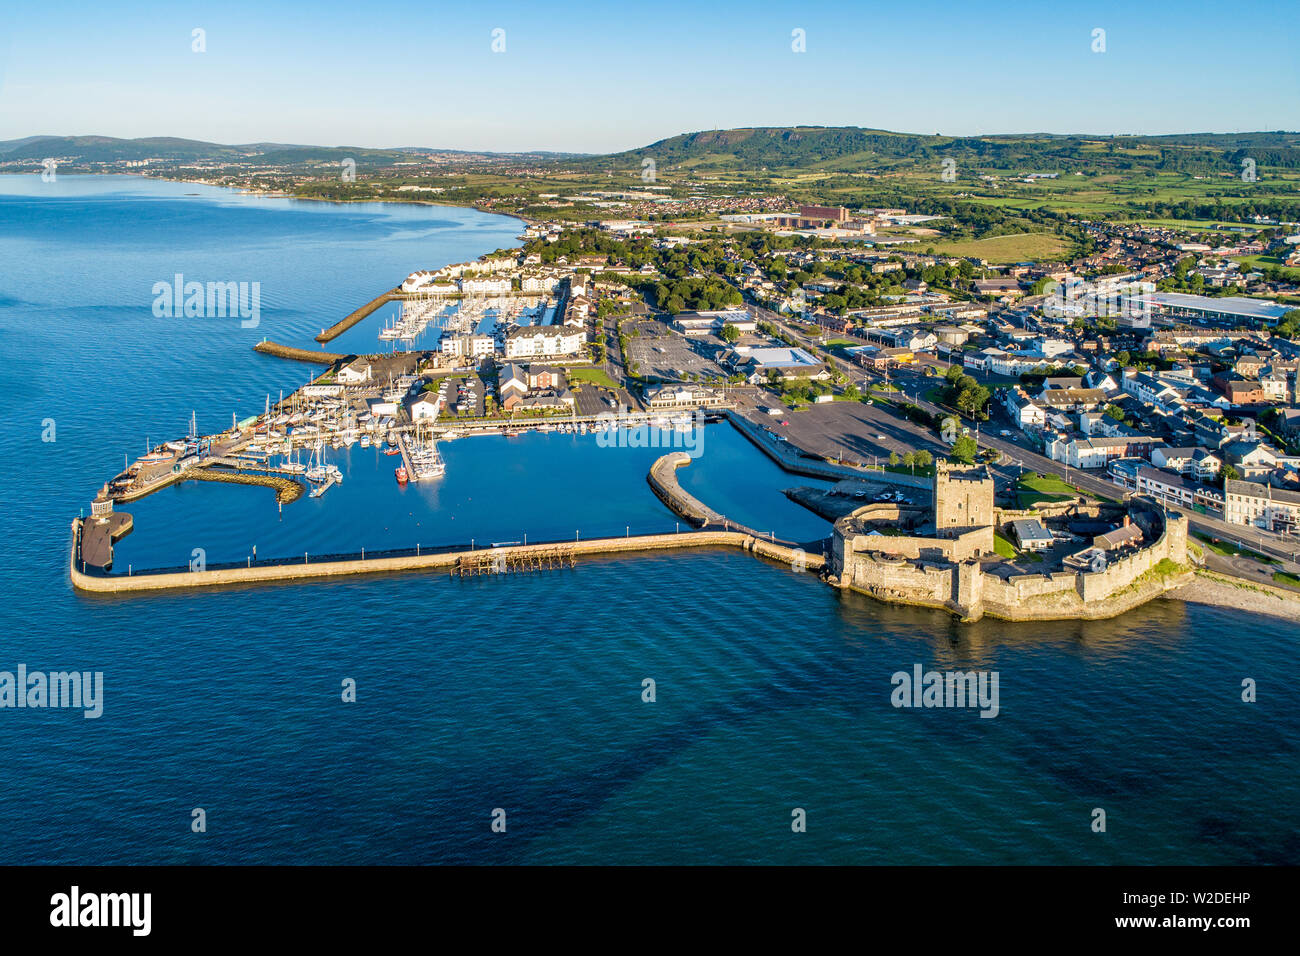 Medieval Norman Castle in Carrickfergus near Belfast in sunrise light. Aerial view with marina, yachts, parking, town and far view of Belfast in the b - Stock Image